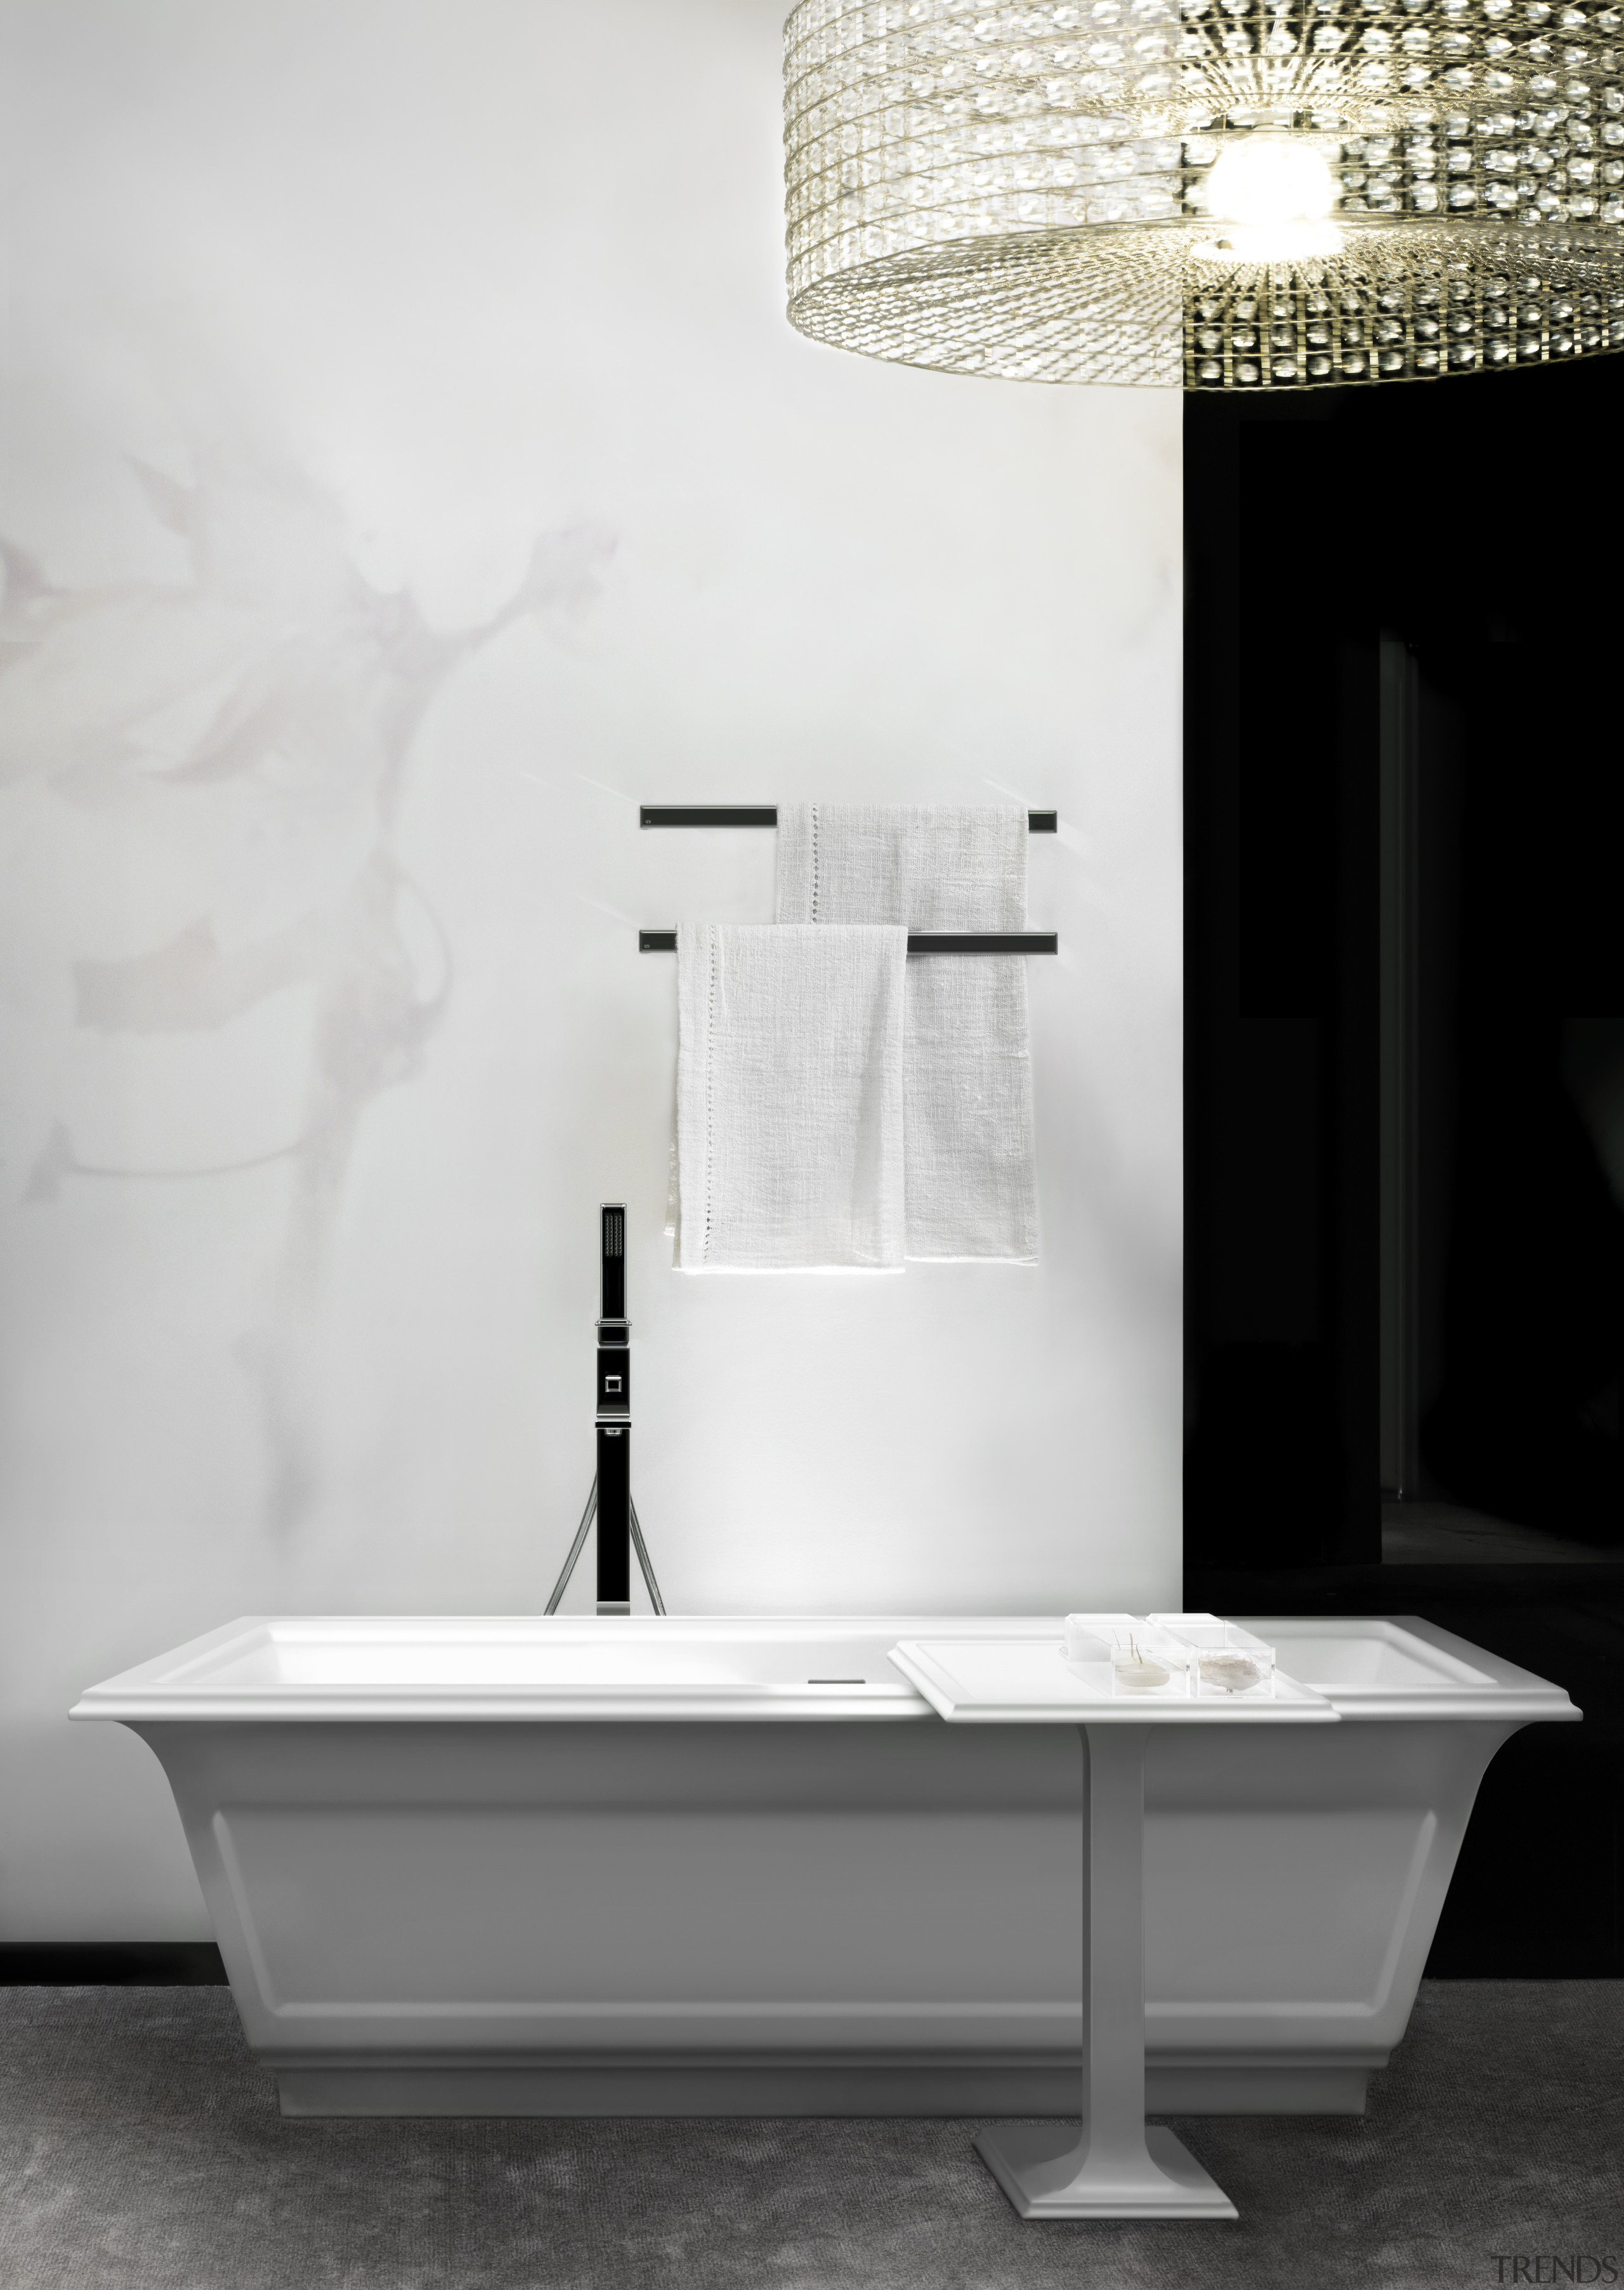 Pared-down simplicity can bring charm and a modern-meets-traditional bathroom, bathroom sink, black and white, floor, furniture, interior design, plumbing fixture, product, product design, sink, table, tap, wall, white, black